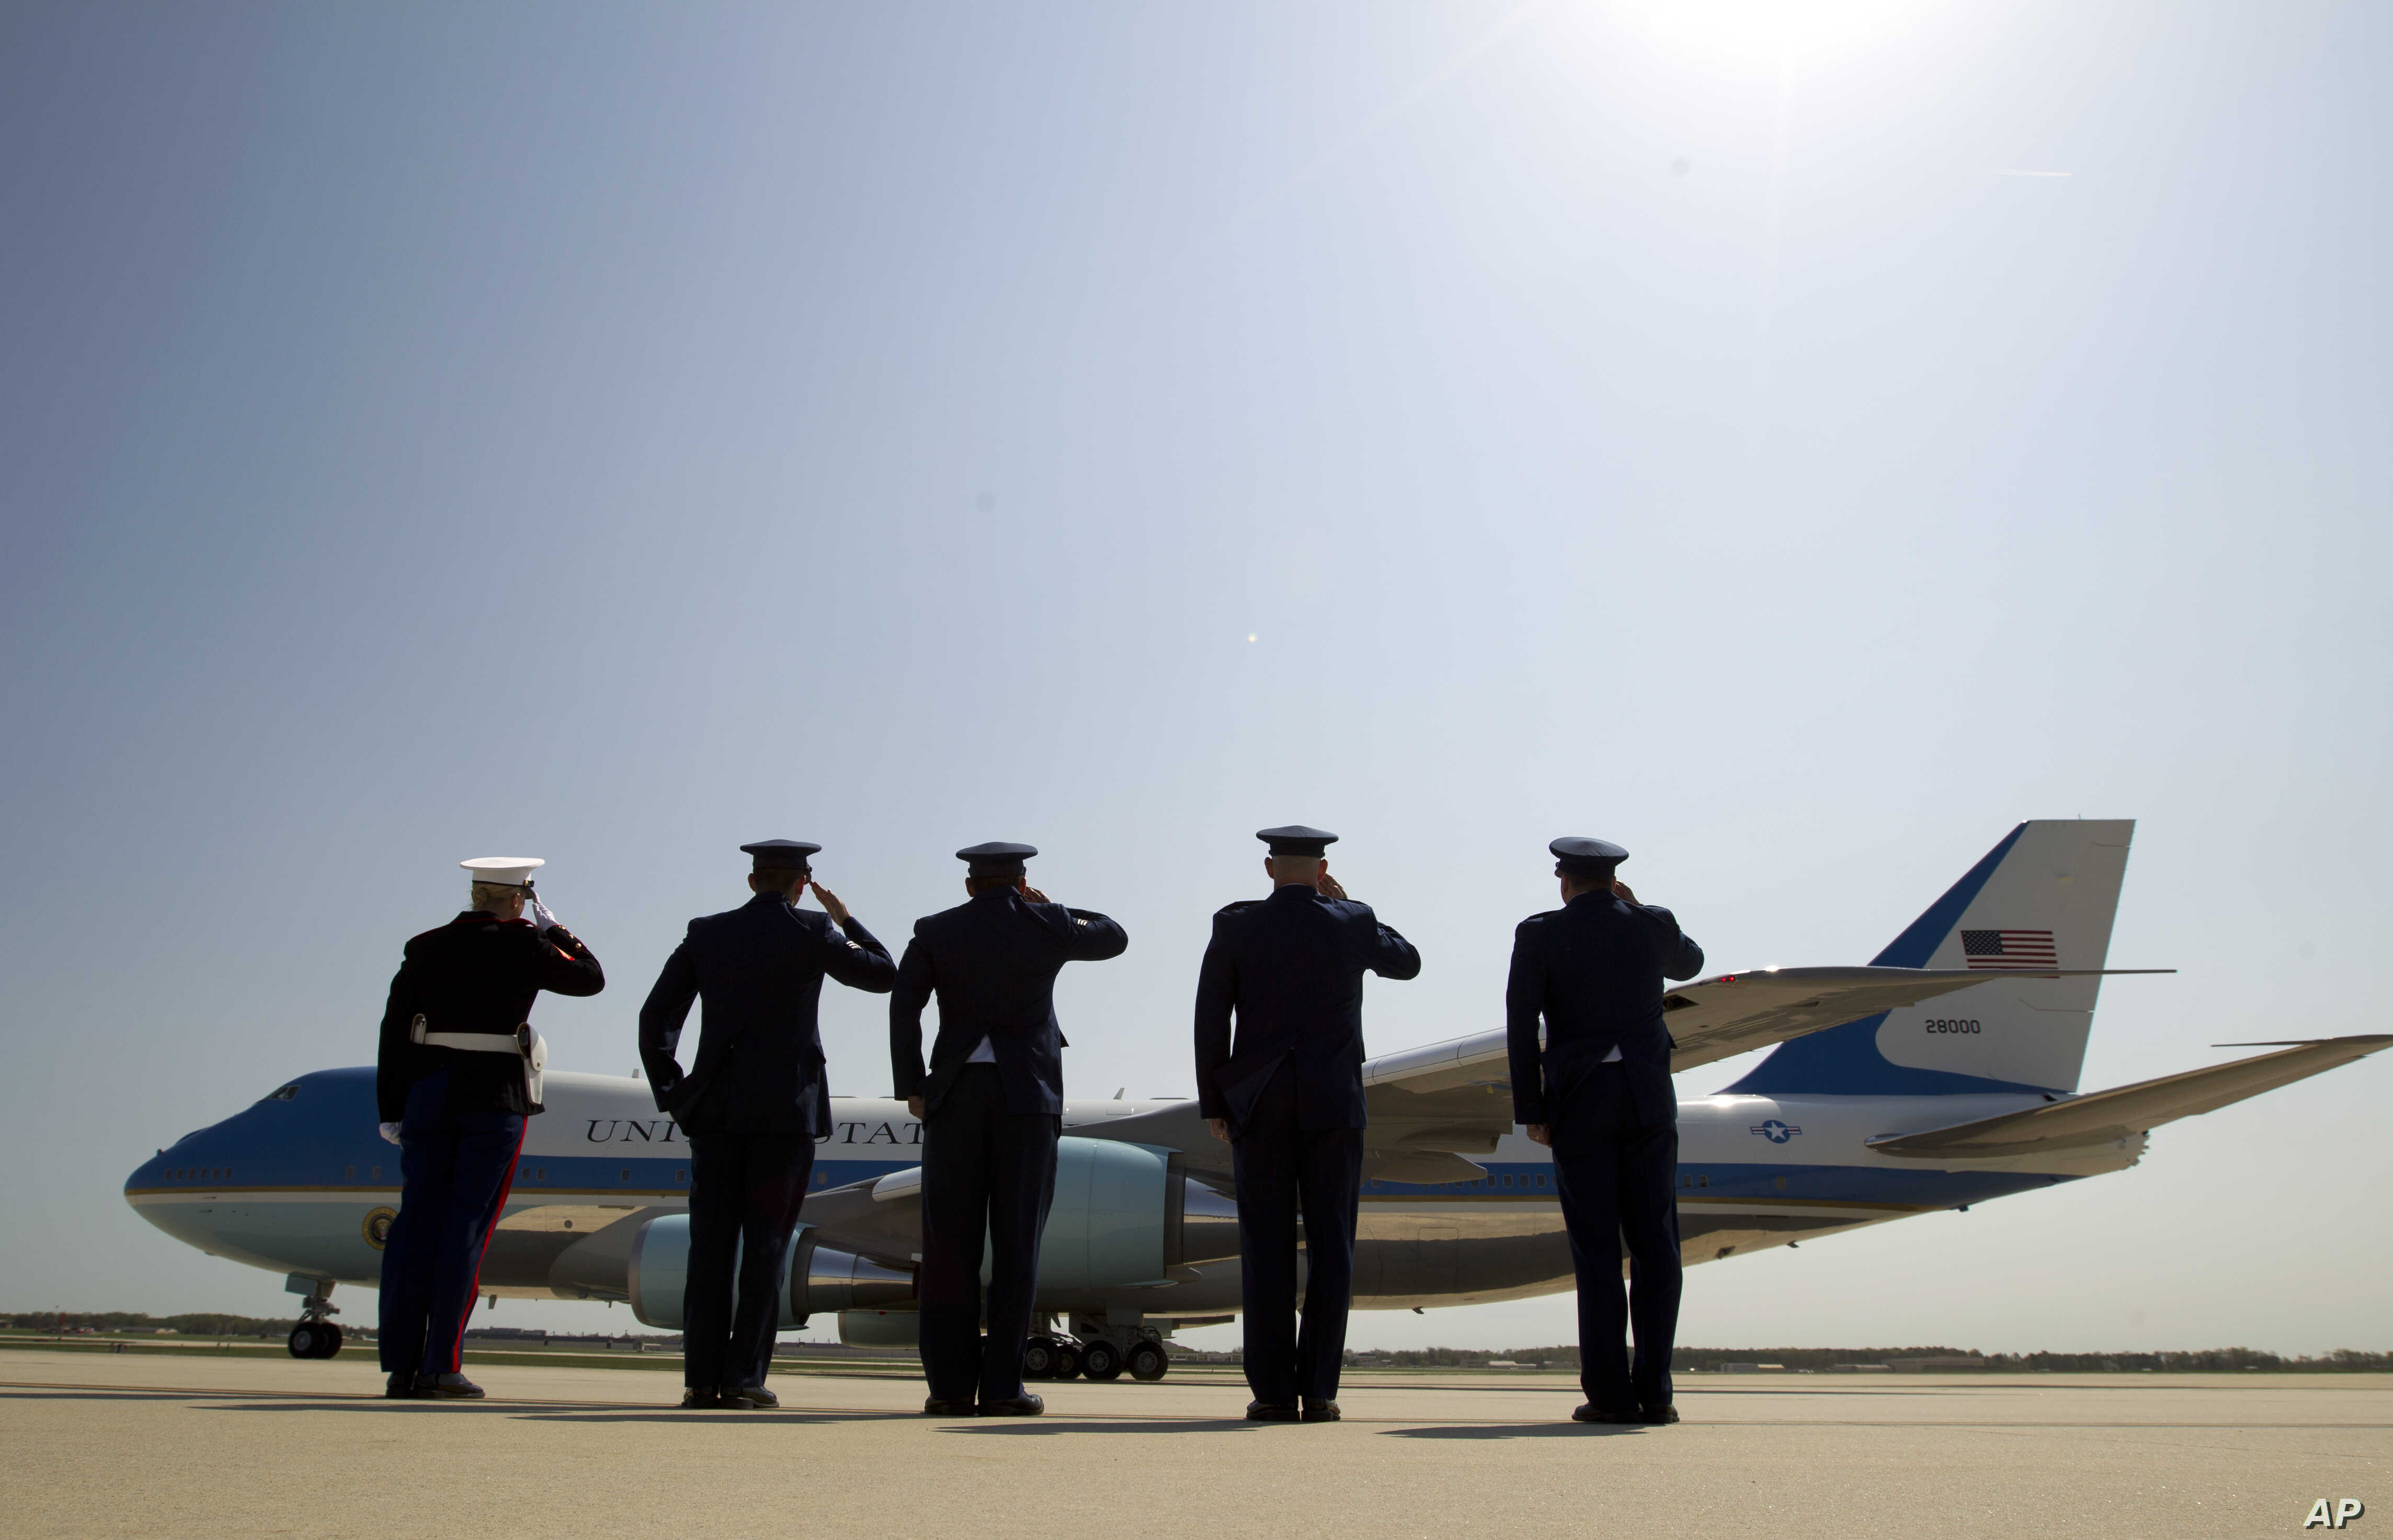 Military personnel salutes as Air Force One, with President Barack Obama aboard, departs from Andrews Air Force Base in Md., Wednesday, April 22, 2015. Obama is celebrating Earth Day with a visit to the Everglades to talk about how global warming thr...